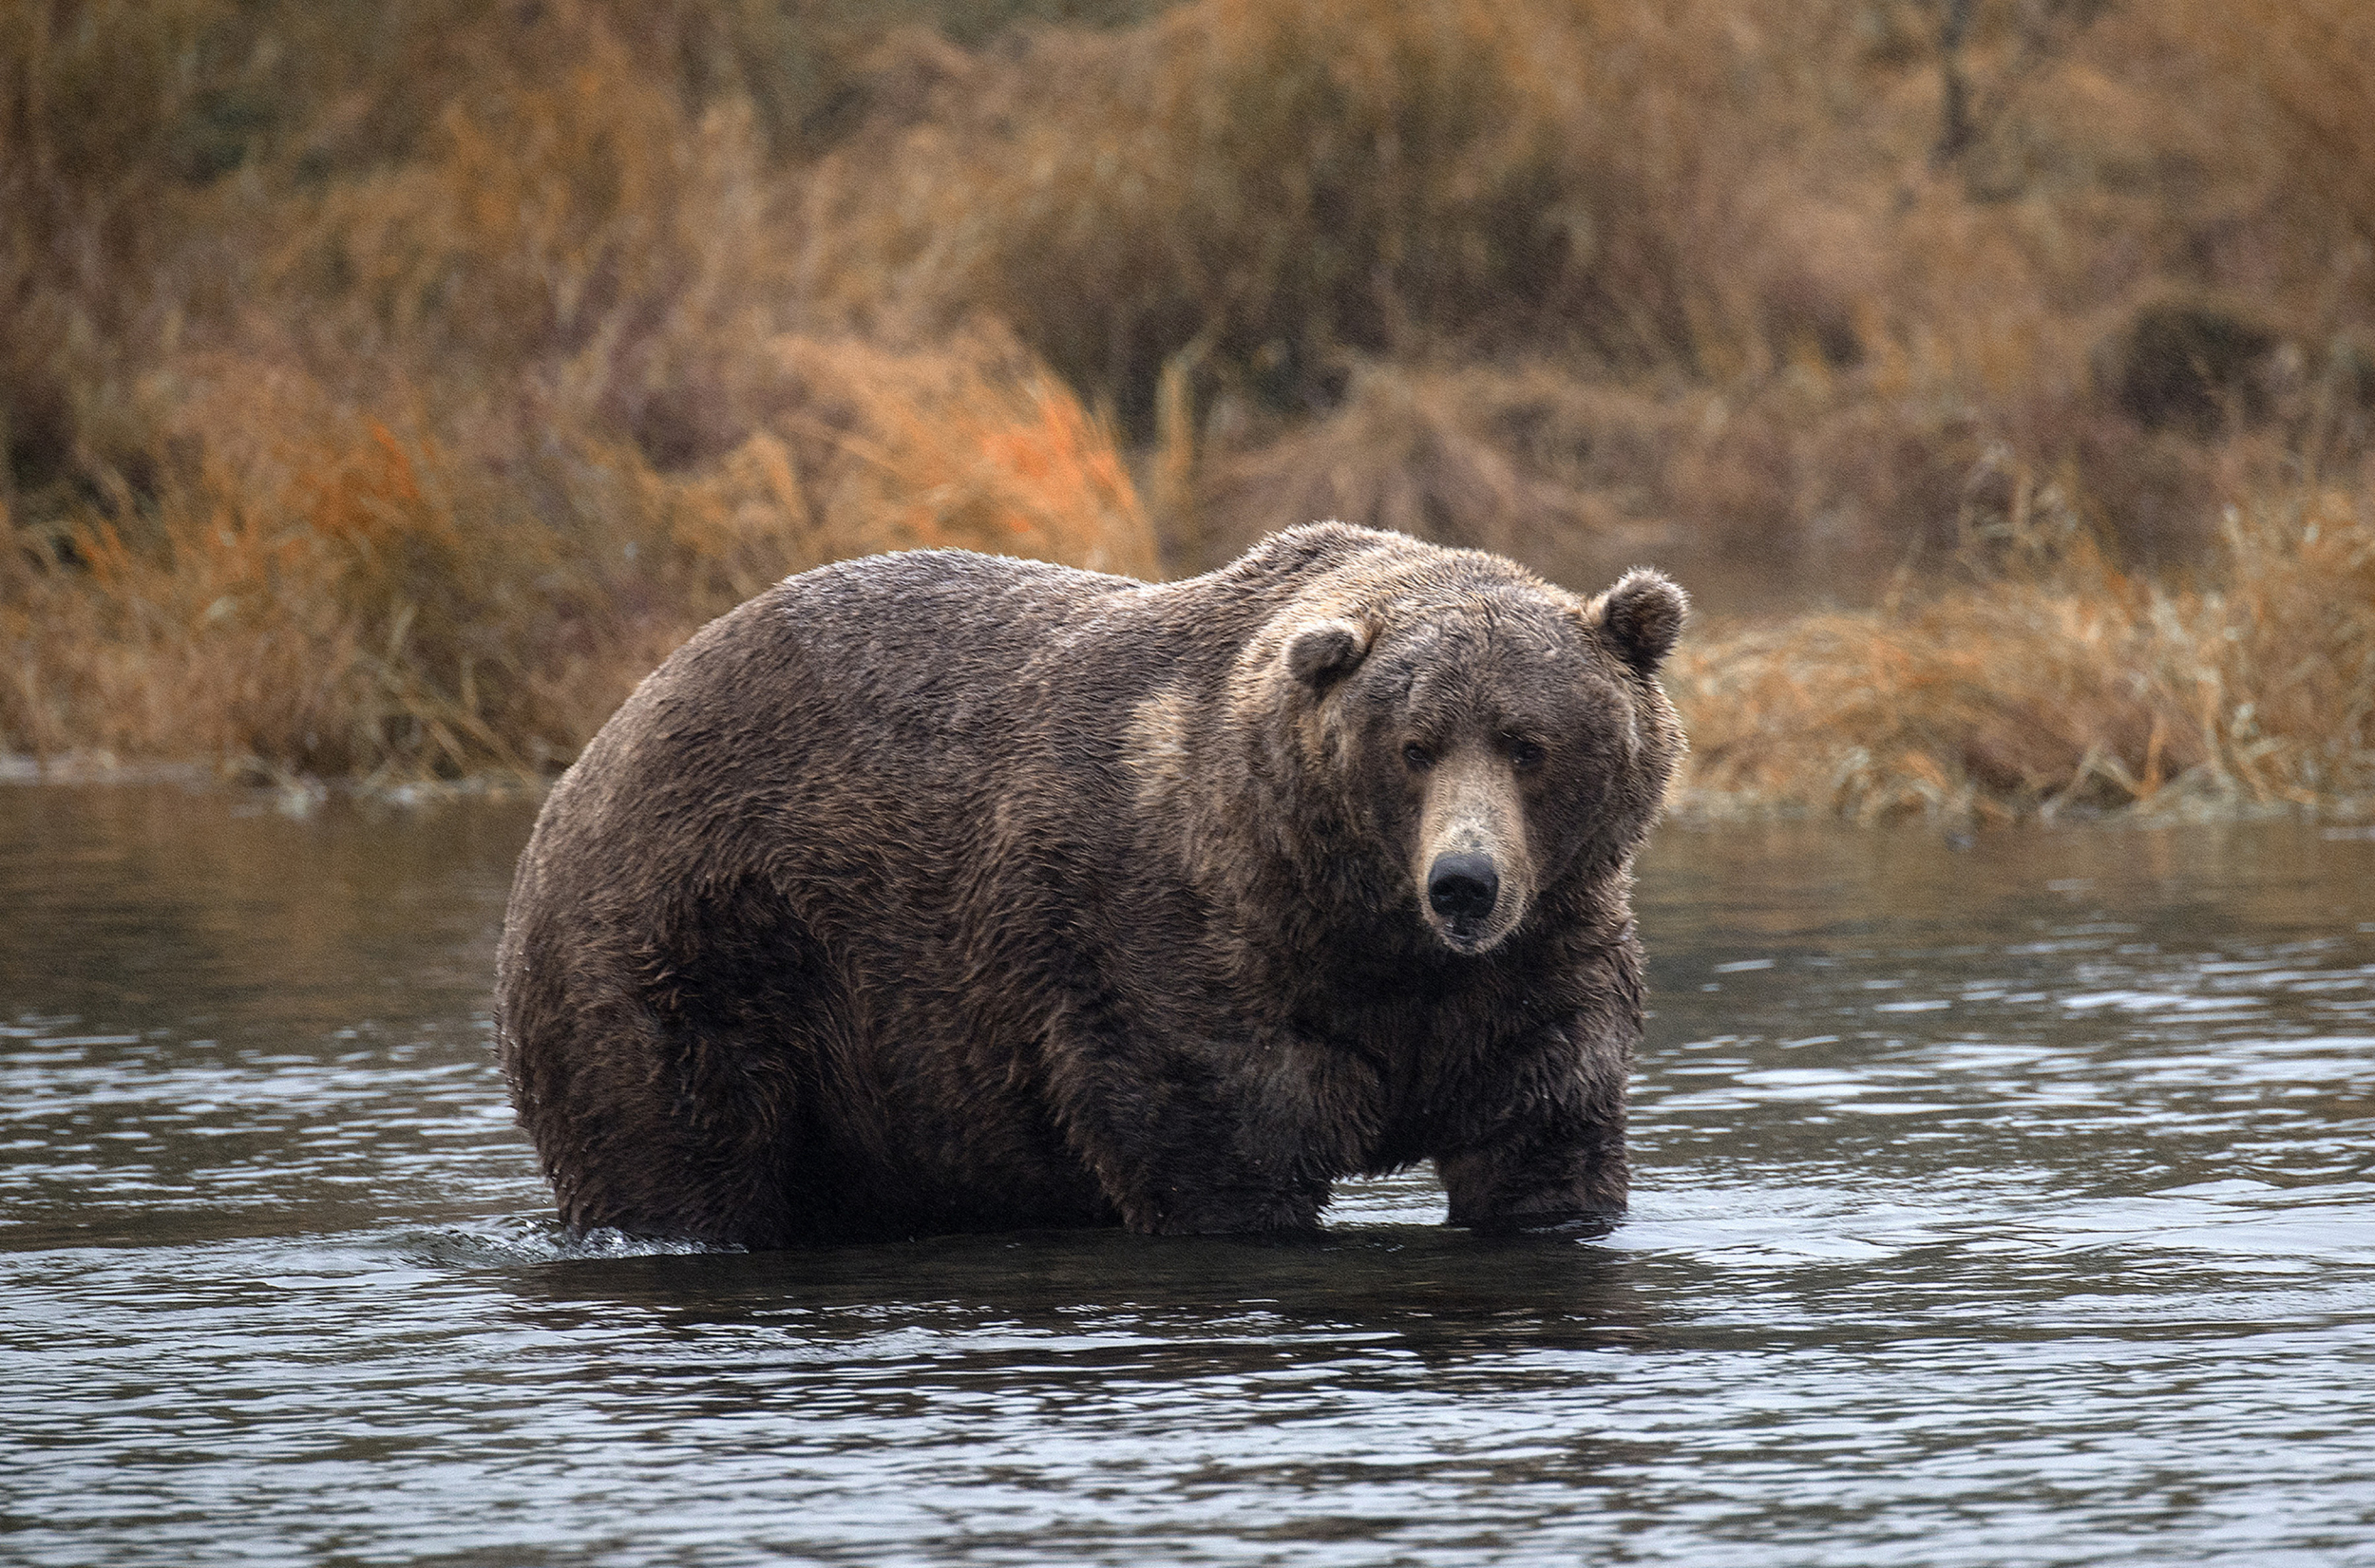 Fat Bear Week 2020: Park Crowns Over 1,400 Pound Bear the